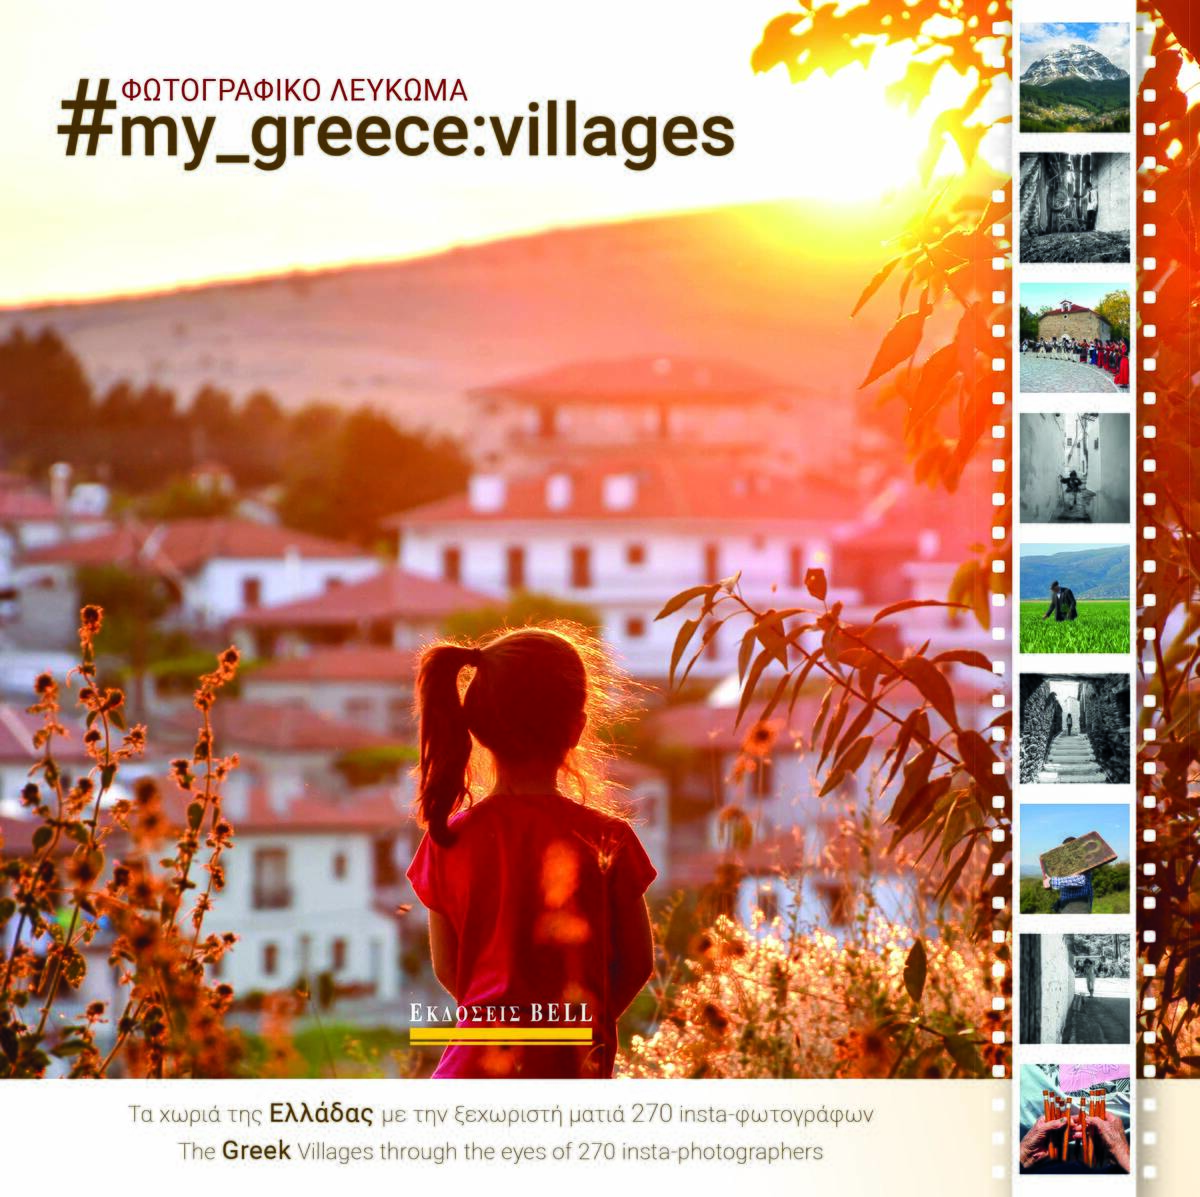 MY GREECE VILLAGES COVER